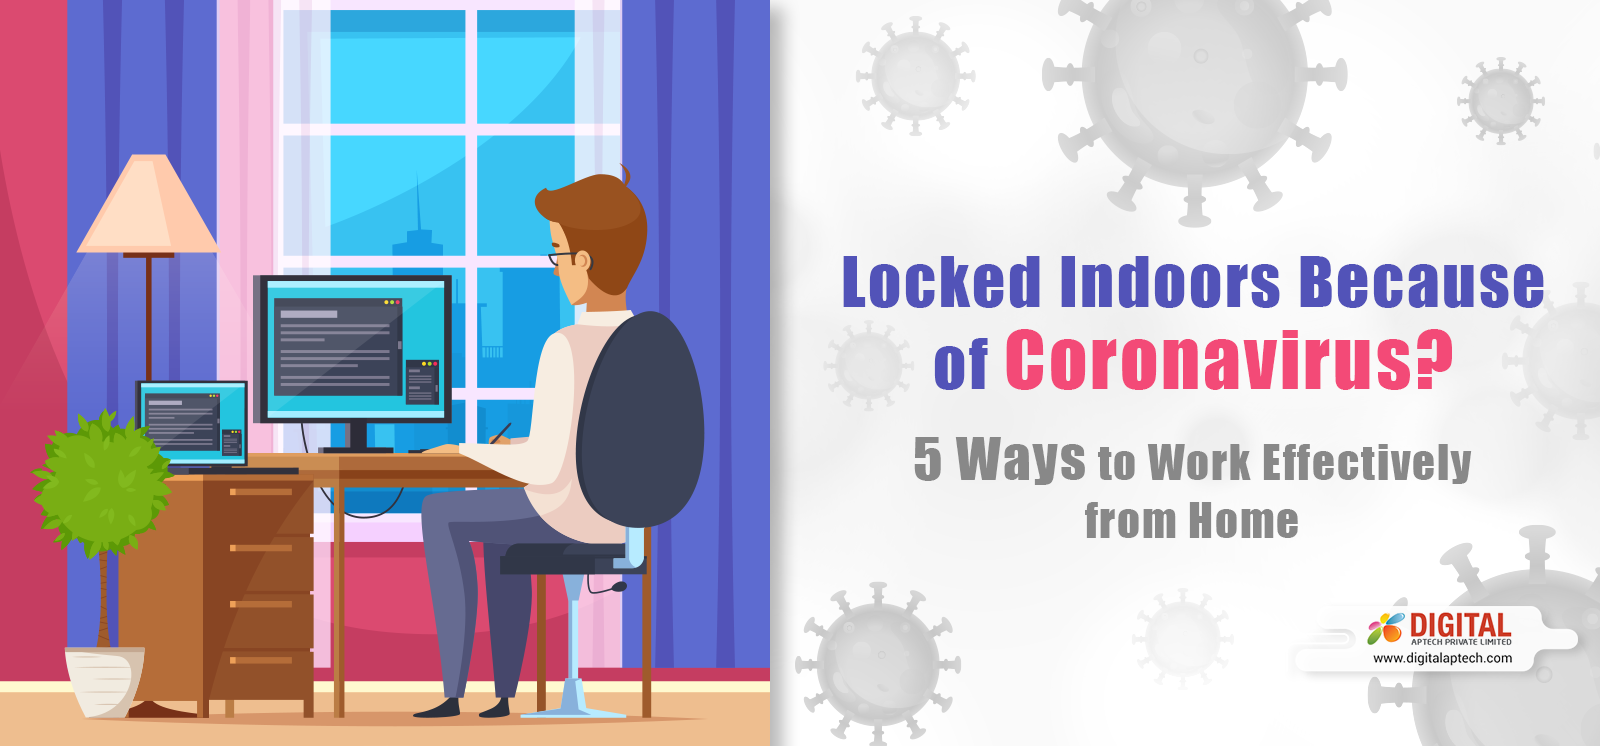 Locked Indoors Because of Coronavirus?  5 Ways to Work Effectively from Home